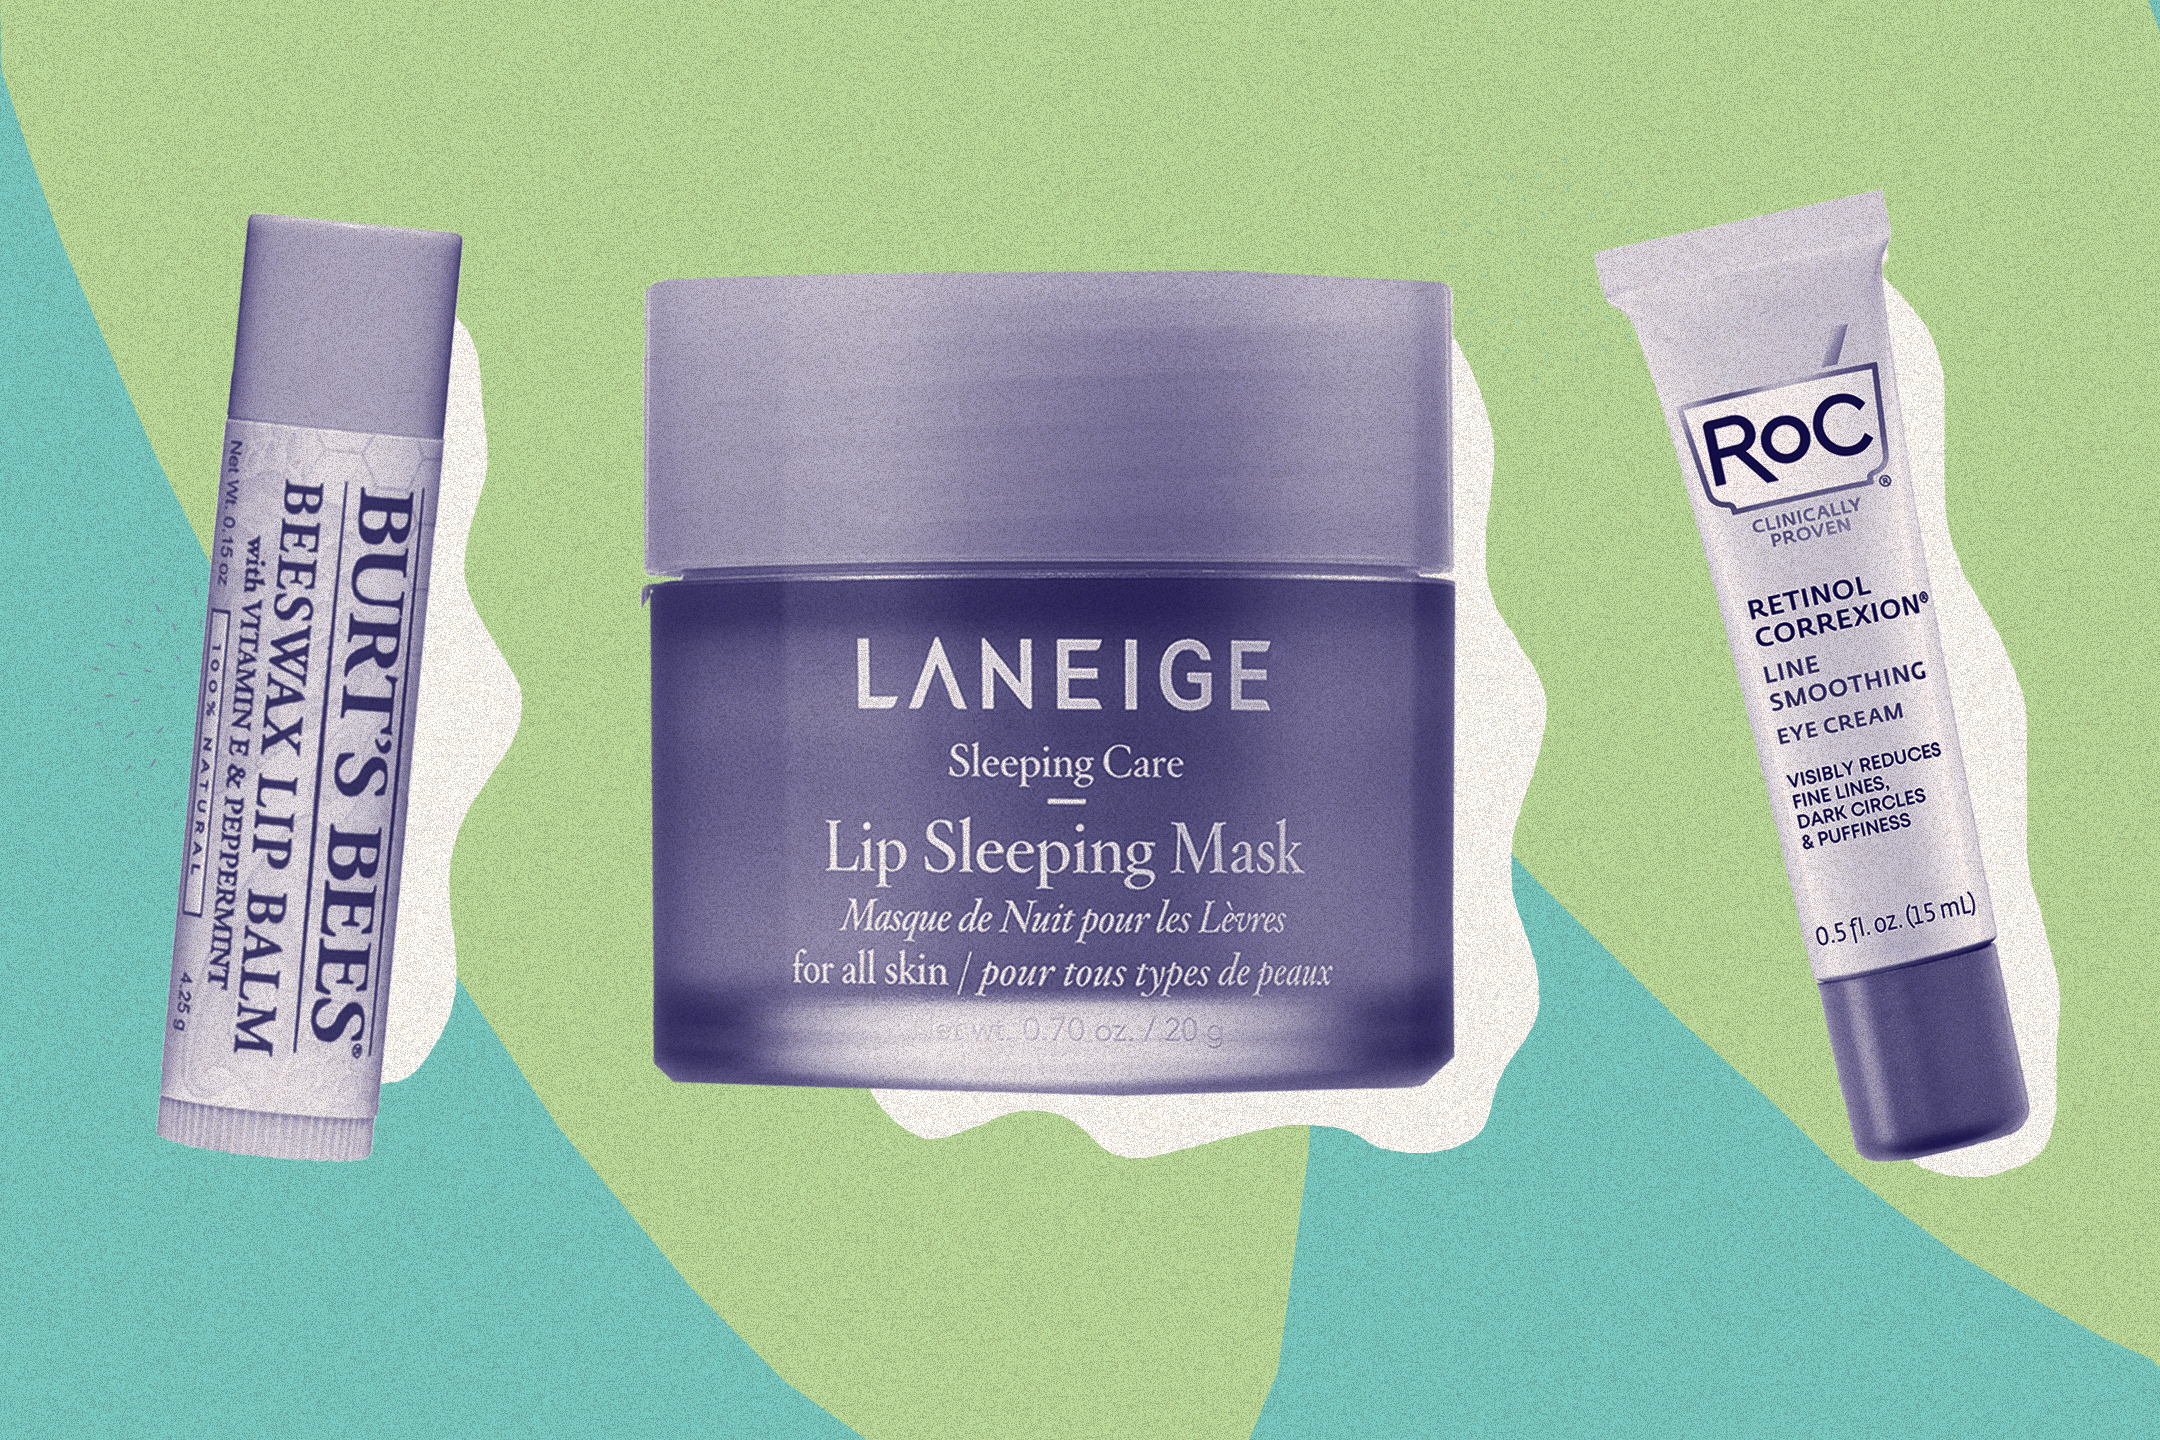 Burt's Bees, Laneige and Roc are among the best eye and lip products.